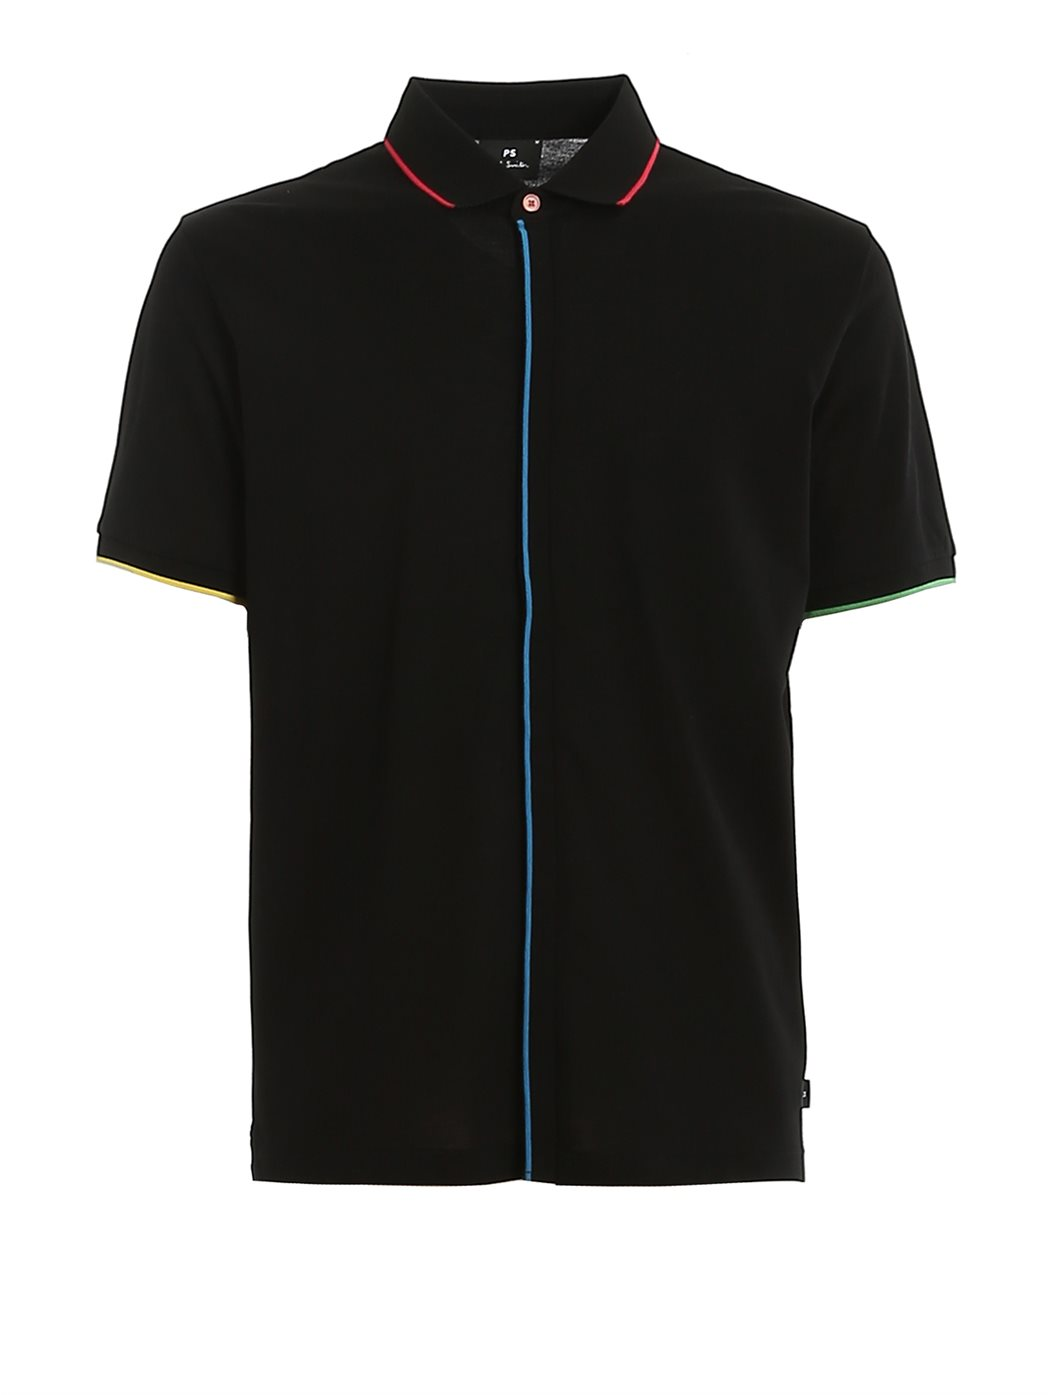 PAUL SMITH M2R-841TT 79-BLACK POLO